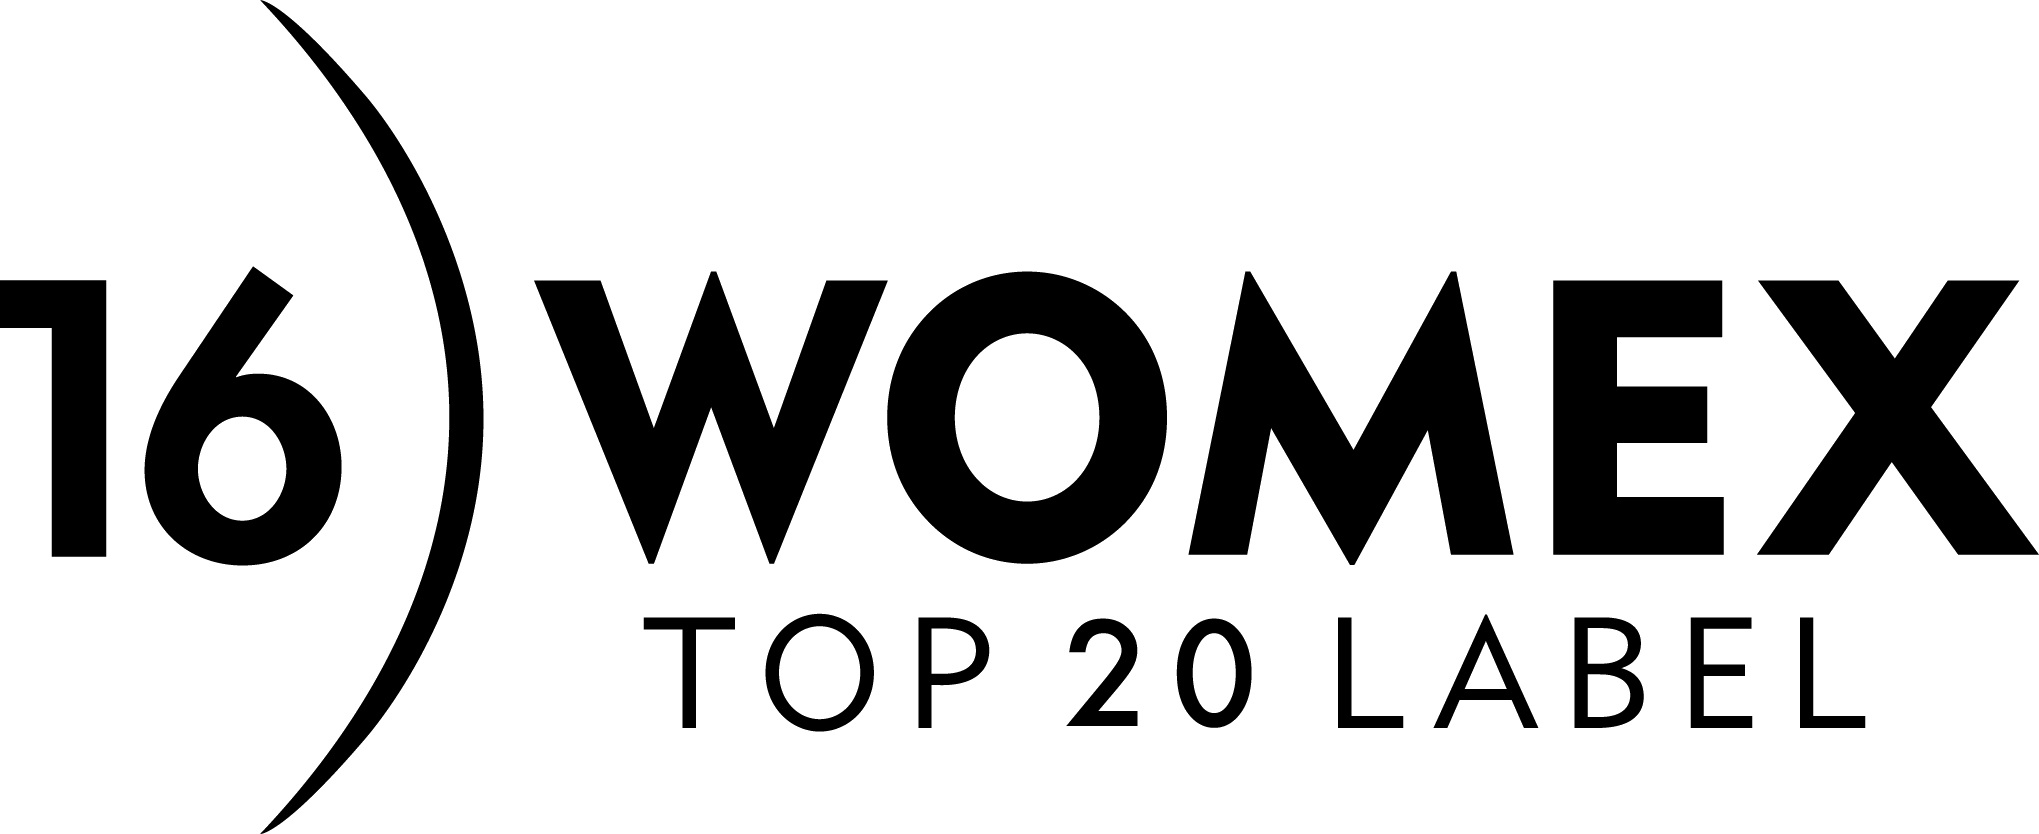 Womex 2016 Top 20 Label